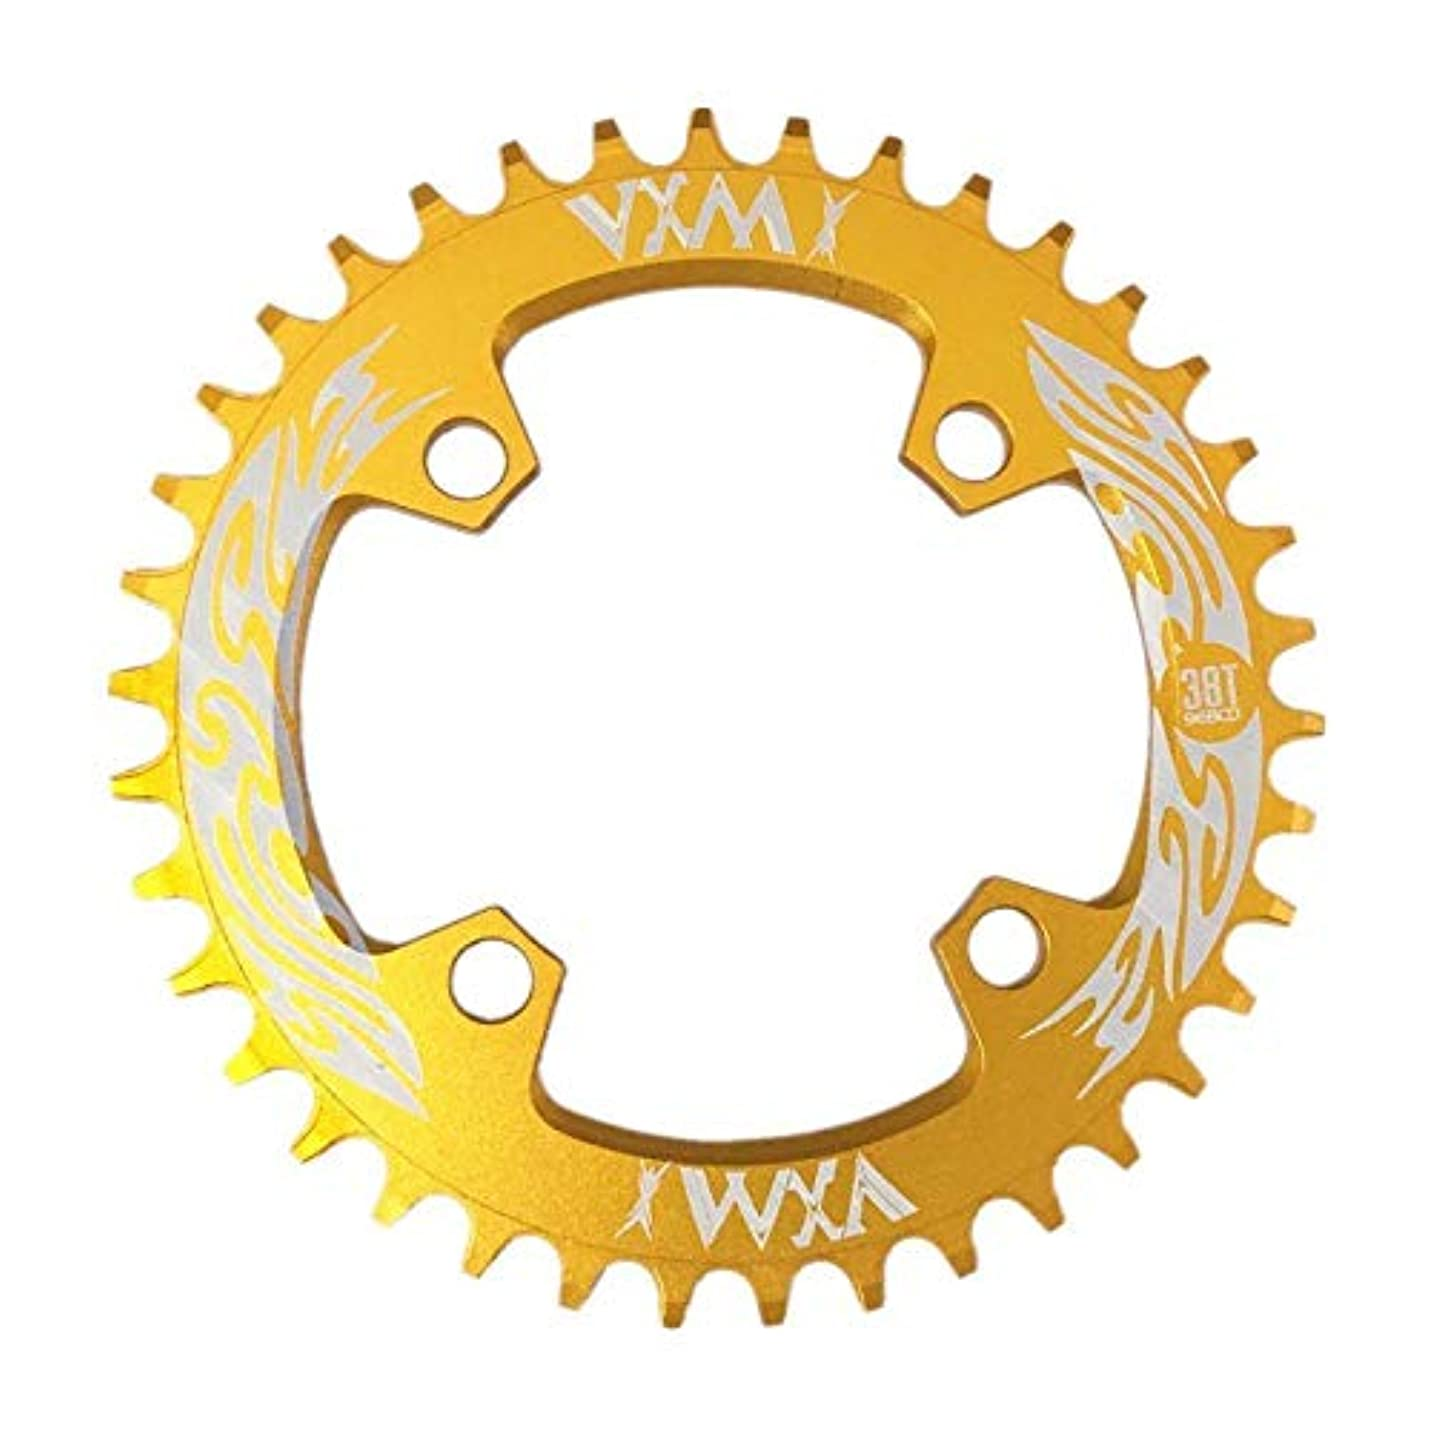 非常に怒っています主張する半円Propenary - Bicycle Crank & Chainwheel 96BCD 38T Ultralight Alloy Bike Bicycle Narrow Wide Chainring Round Chainwheel Cycle Crankset [ Gold ]